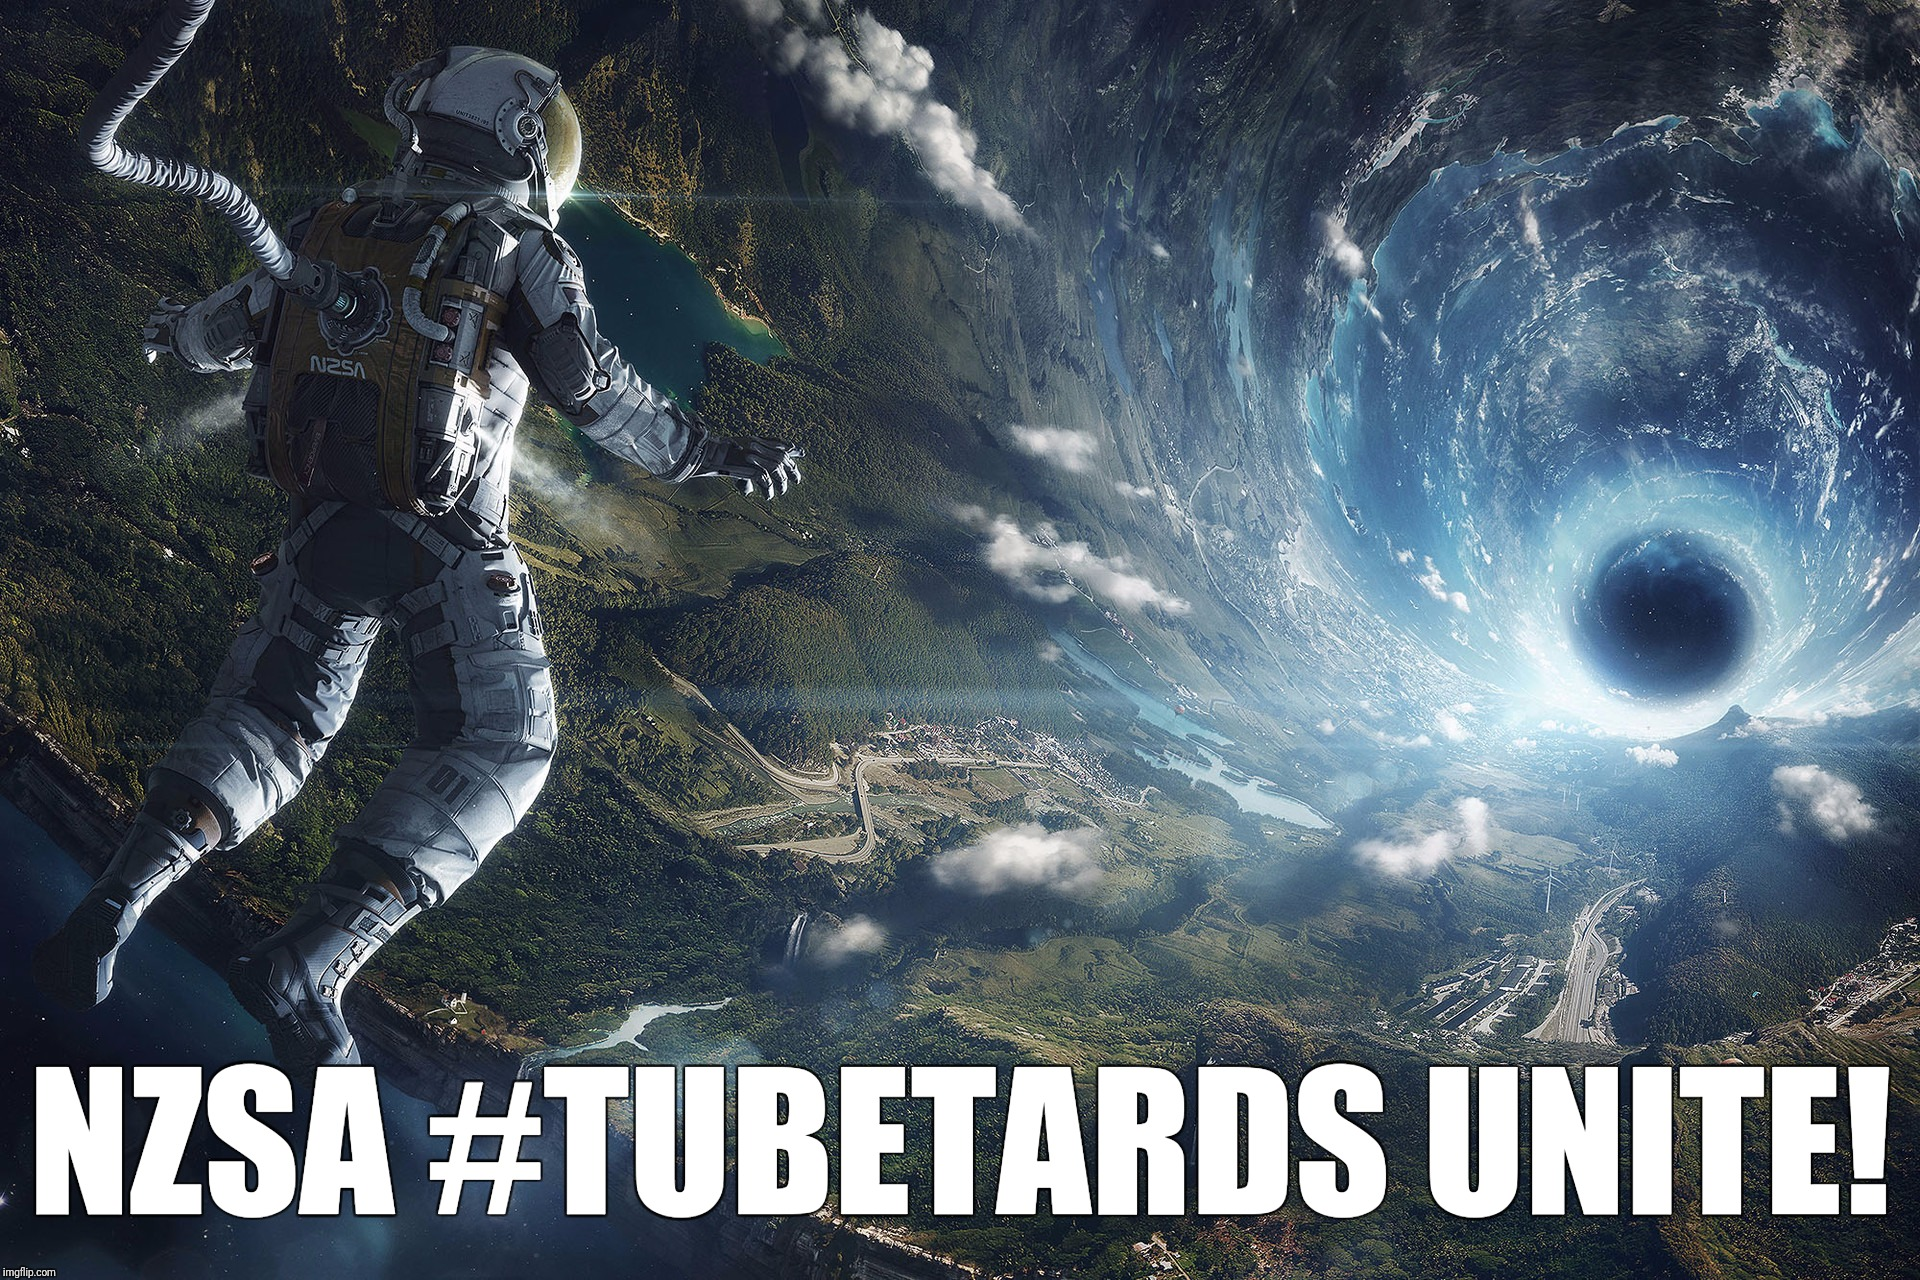 NZSA #TUBETARDS UNITE! | made w/ Imgflip meme maker